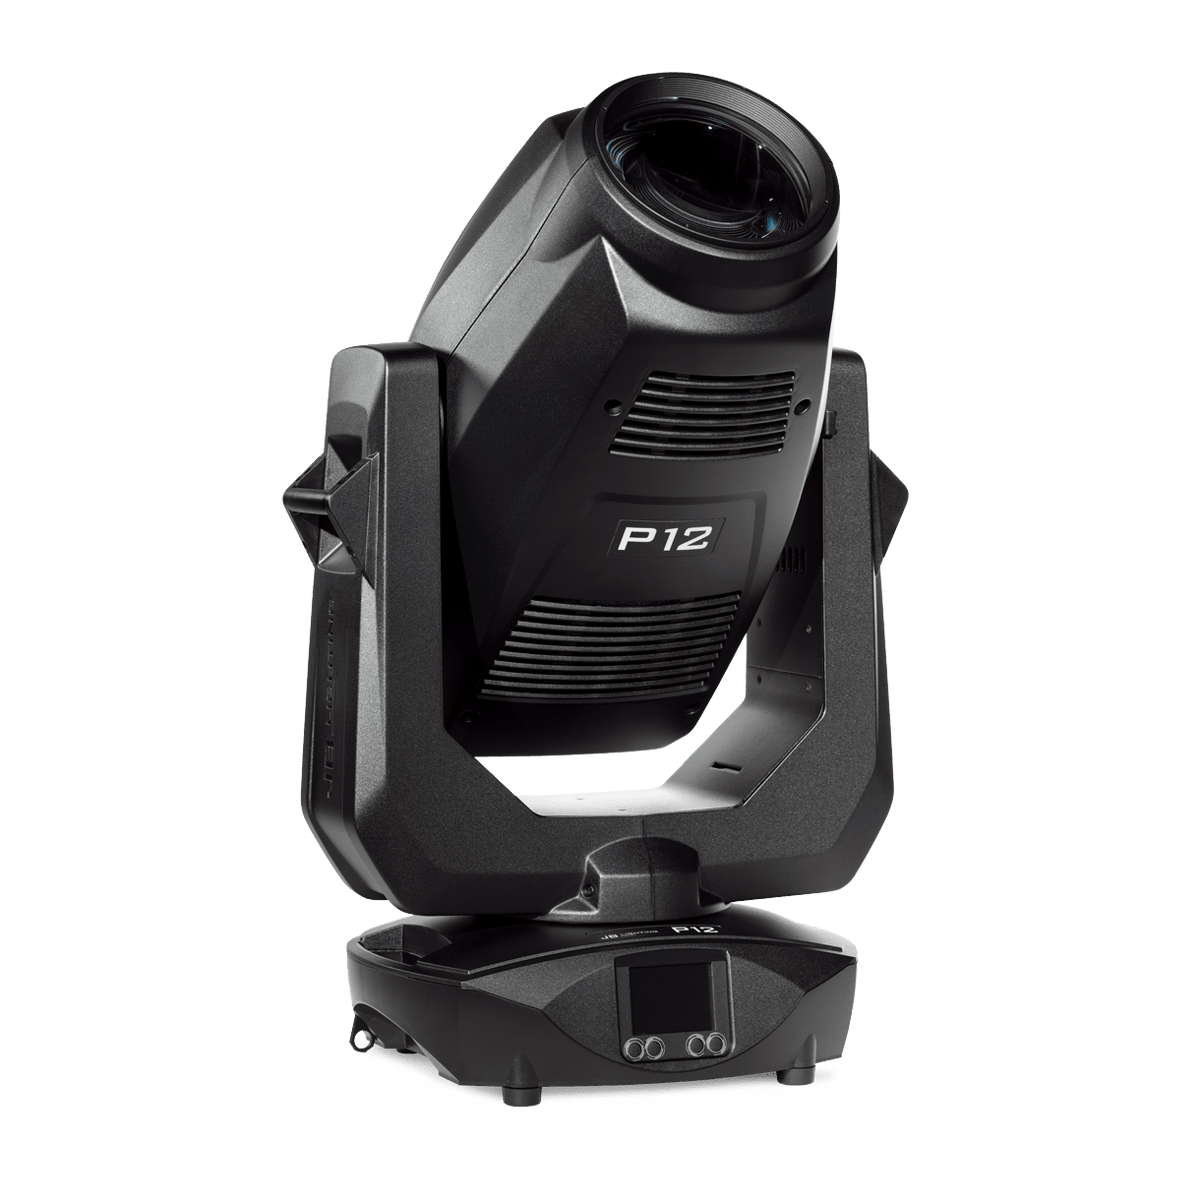 JB-Lighting P12 Spot LED Moving Head 640w